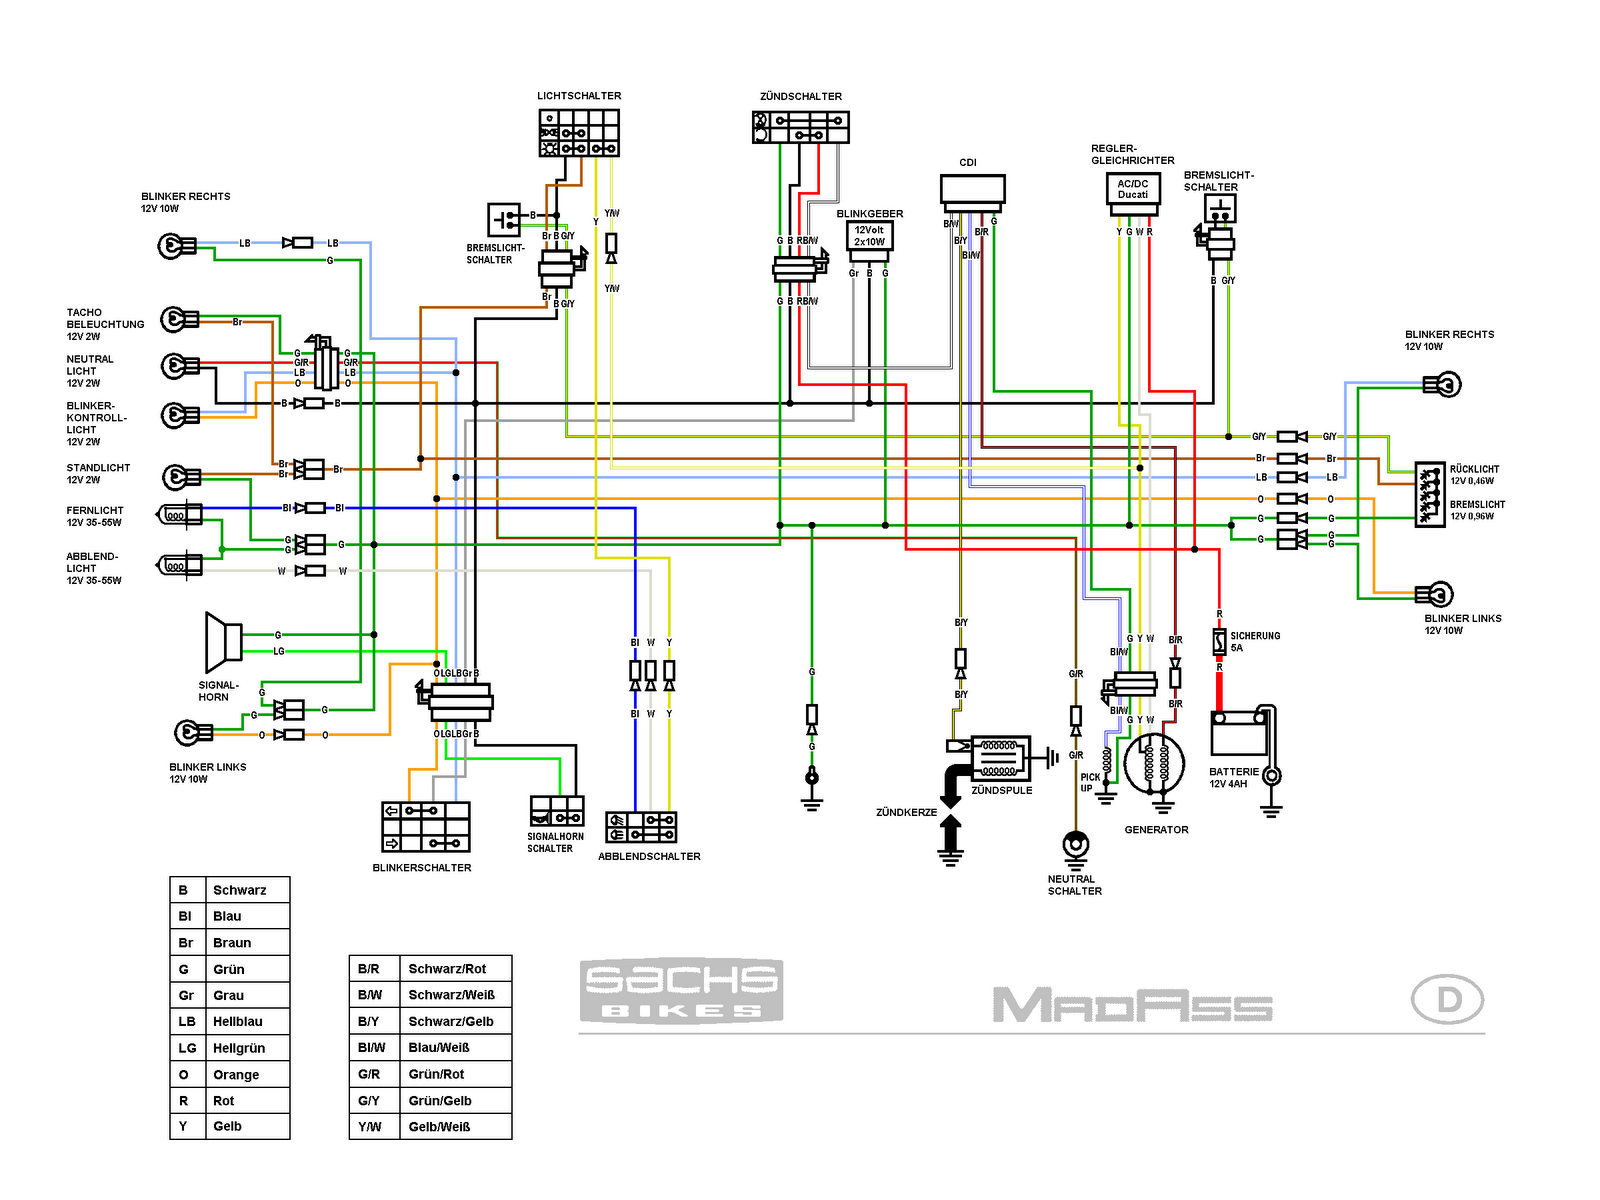 Marvelous Cat 3512B Wiring Diagram Wiring Diagram Wiring Digital Resources Indicompassionincorg